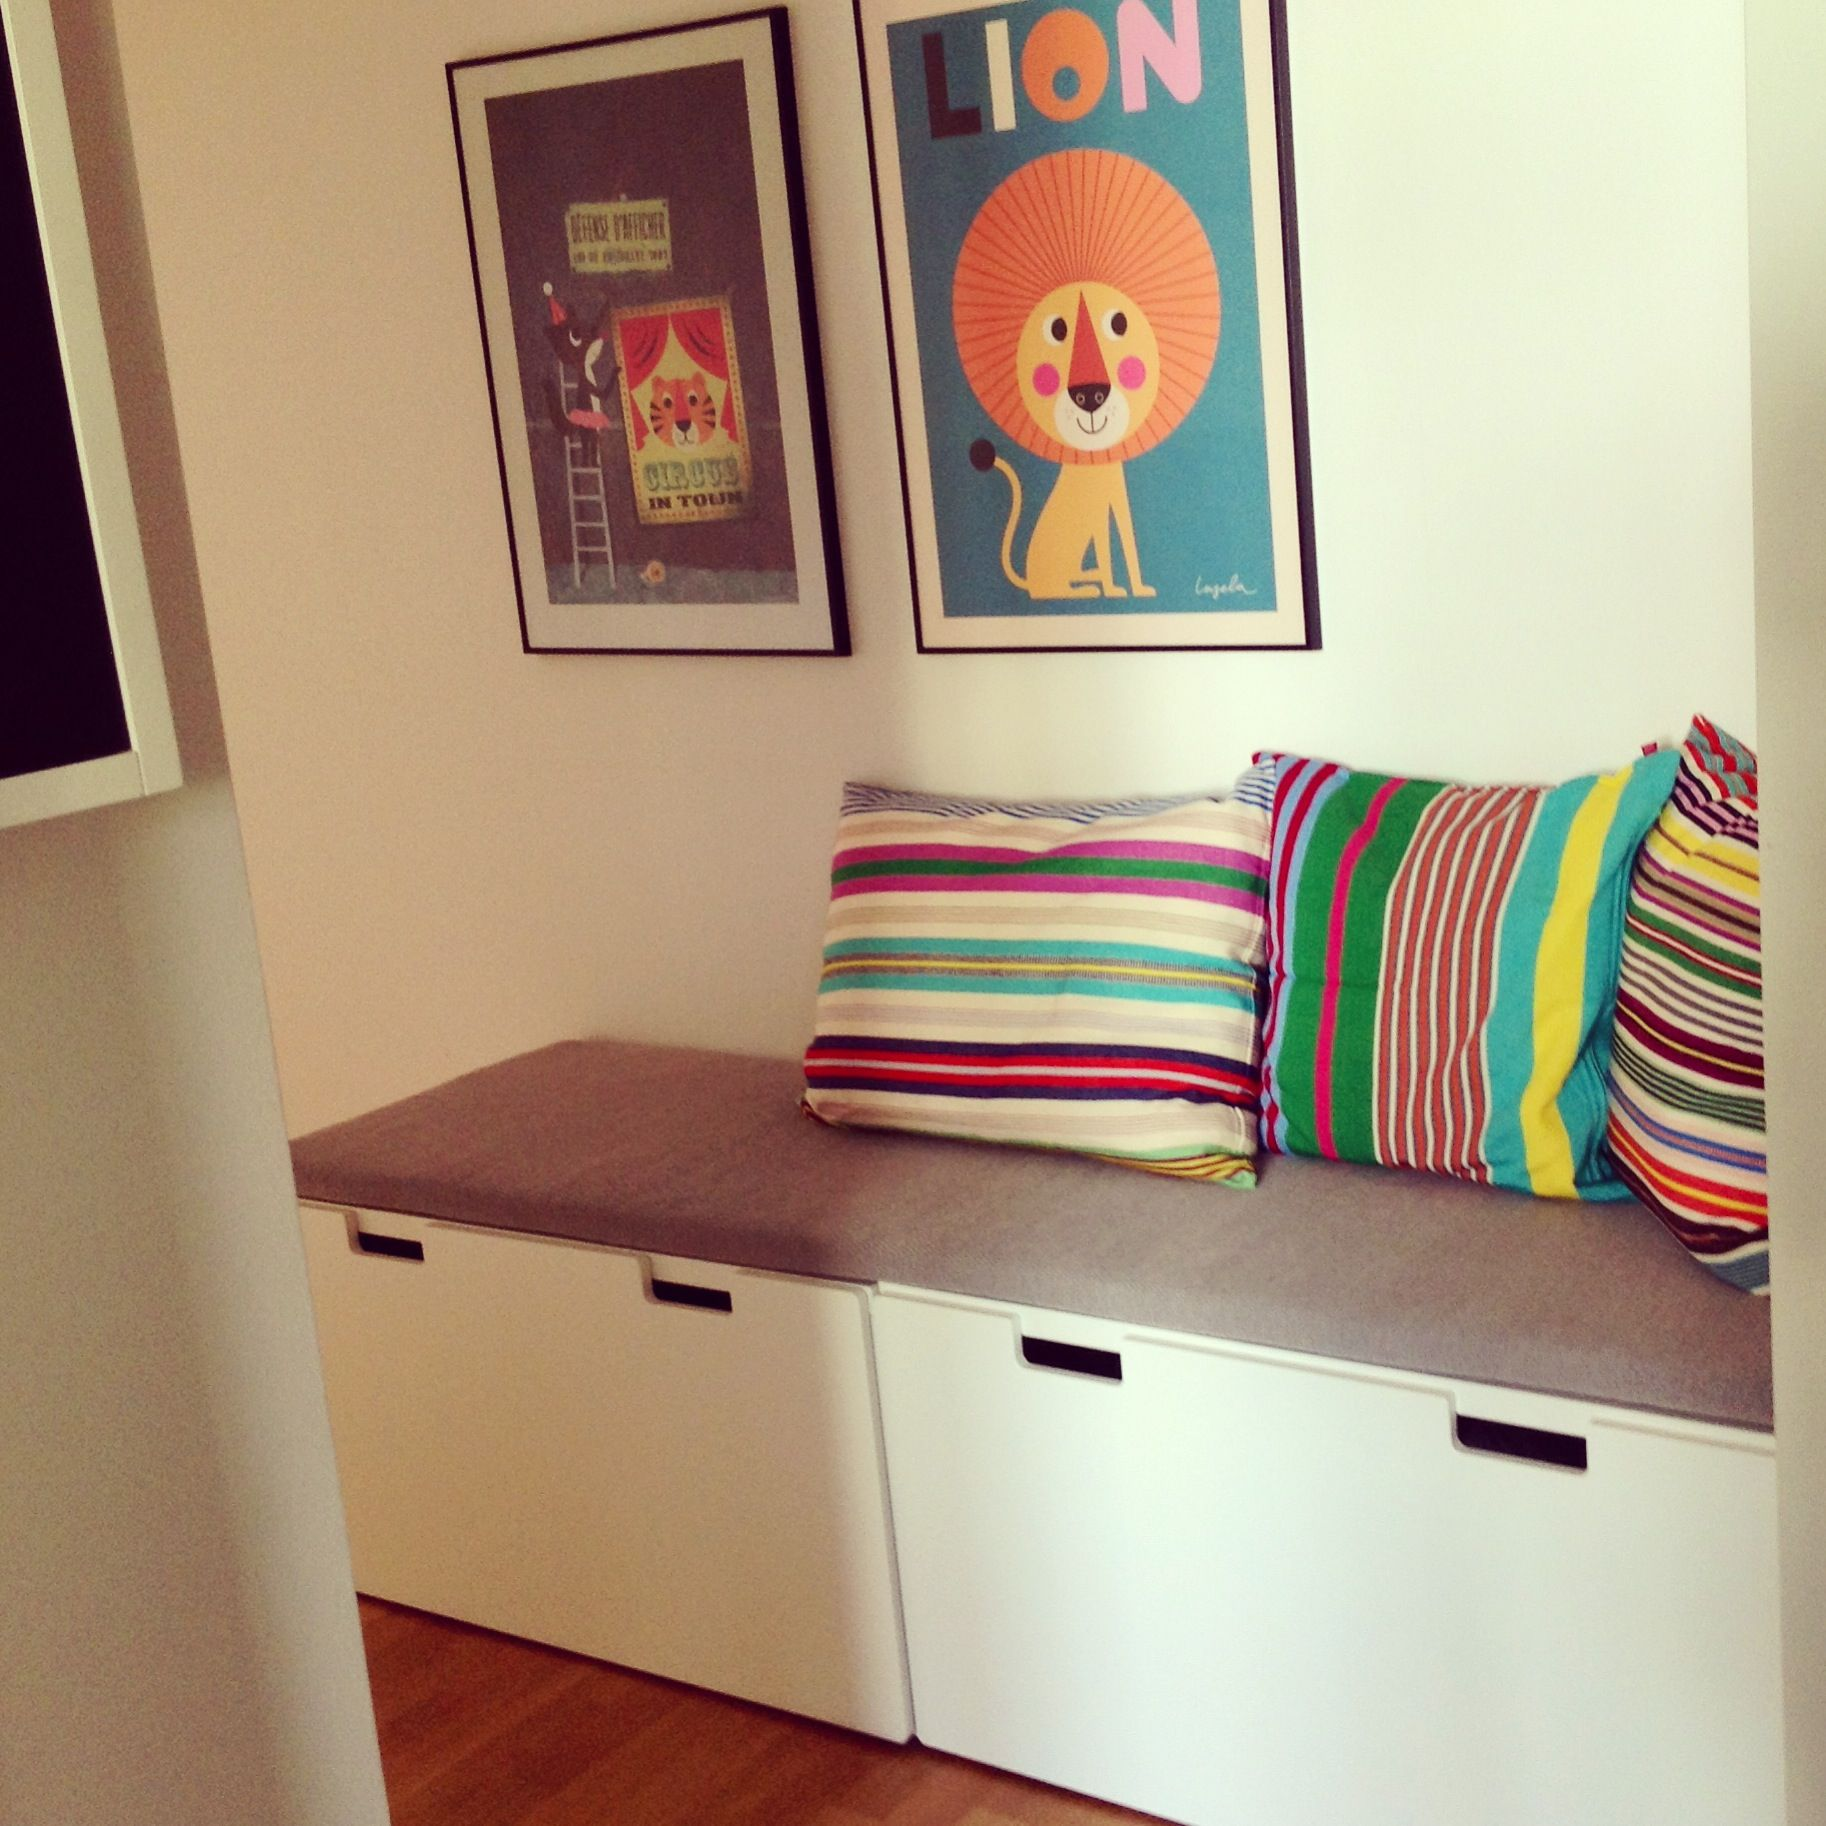 Ikea Badezimmer Einrichtung Hallway Bench Made By Ikea Stuva With Afroart Pillows